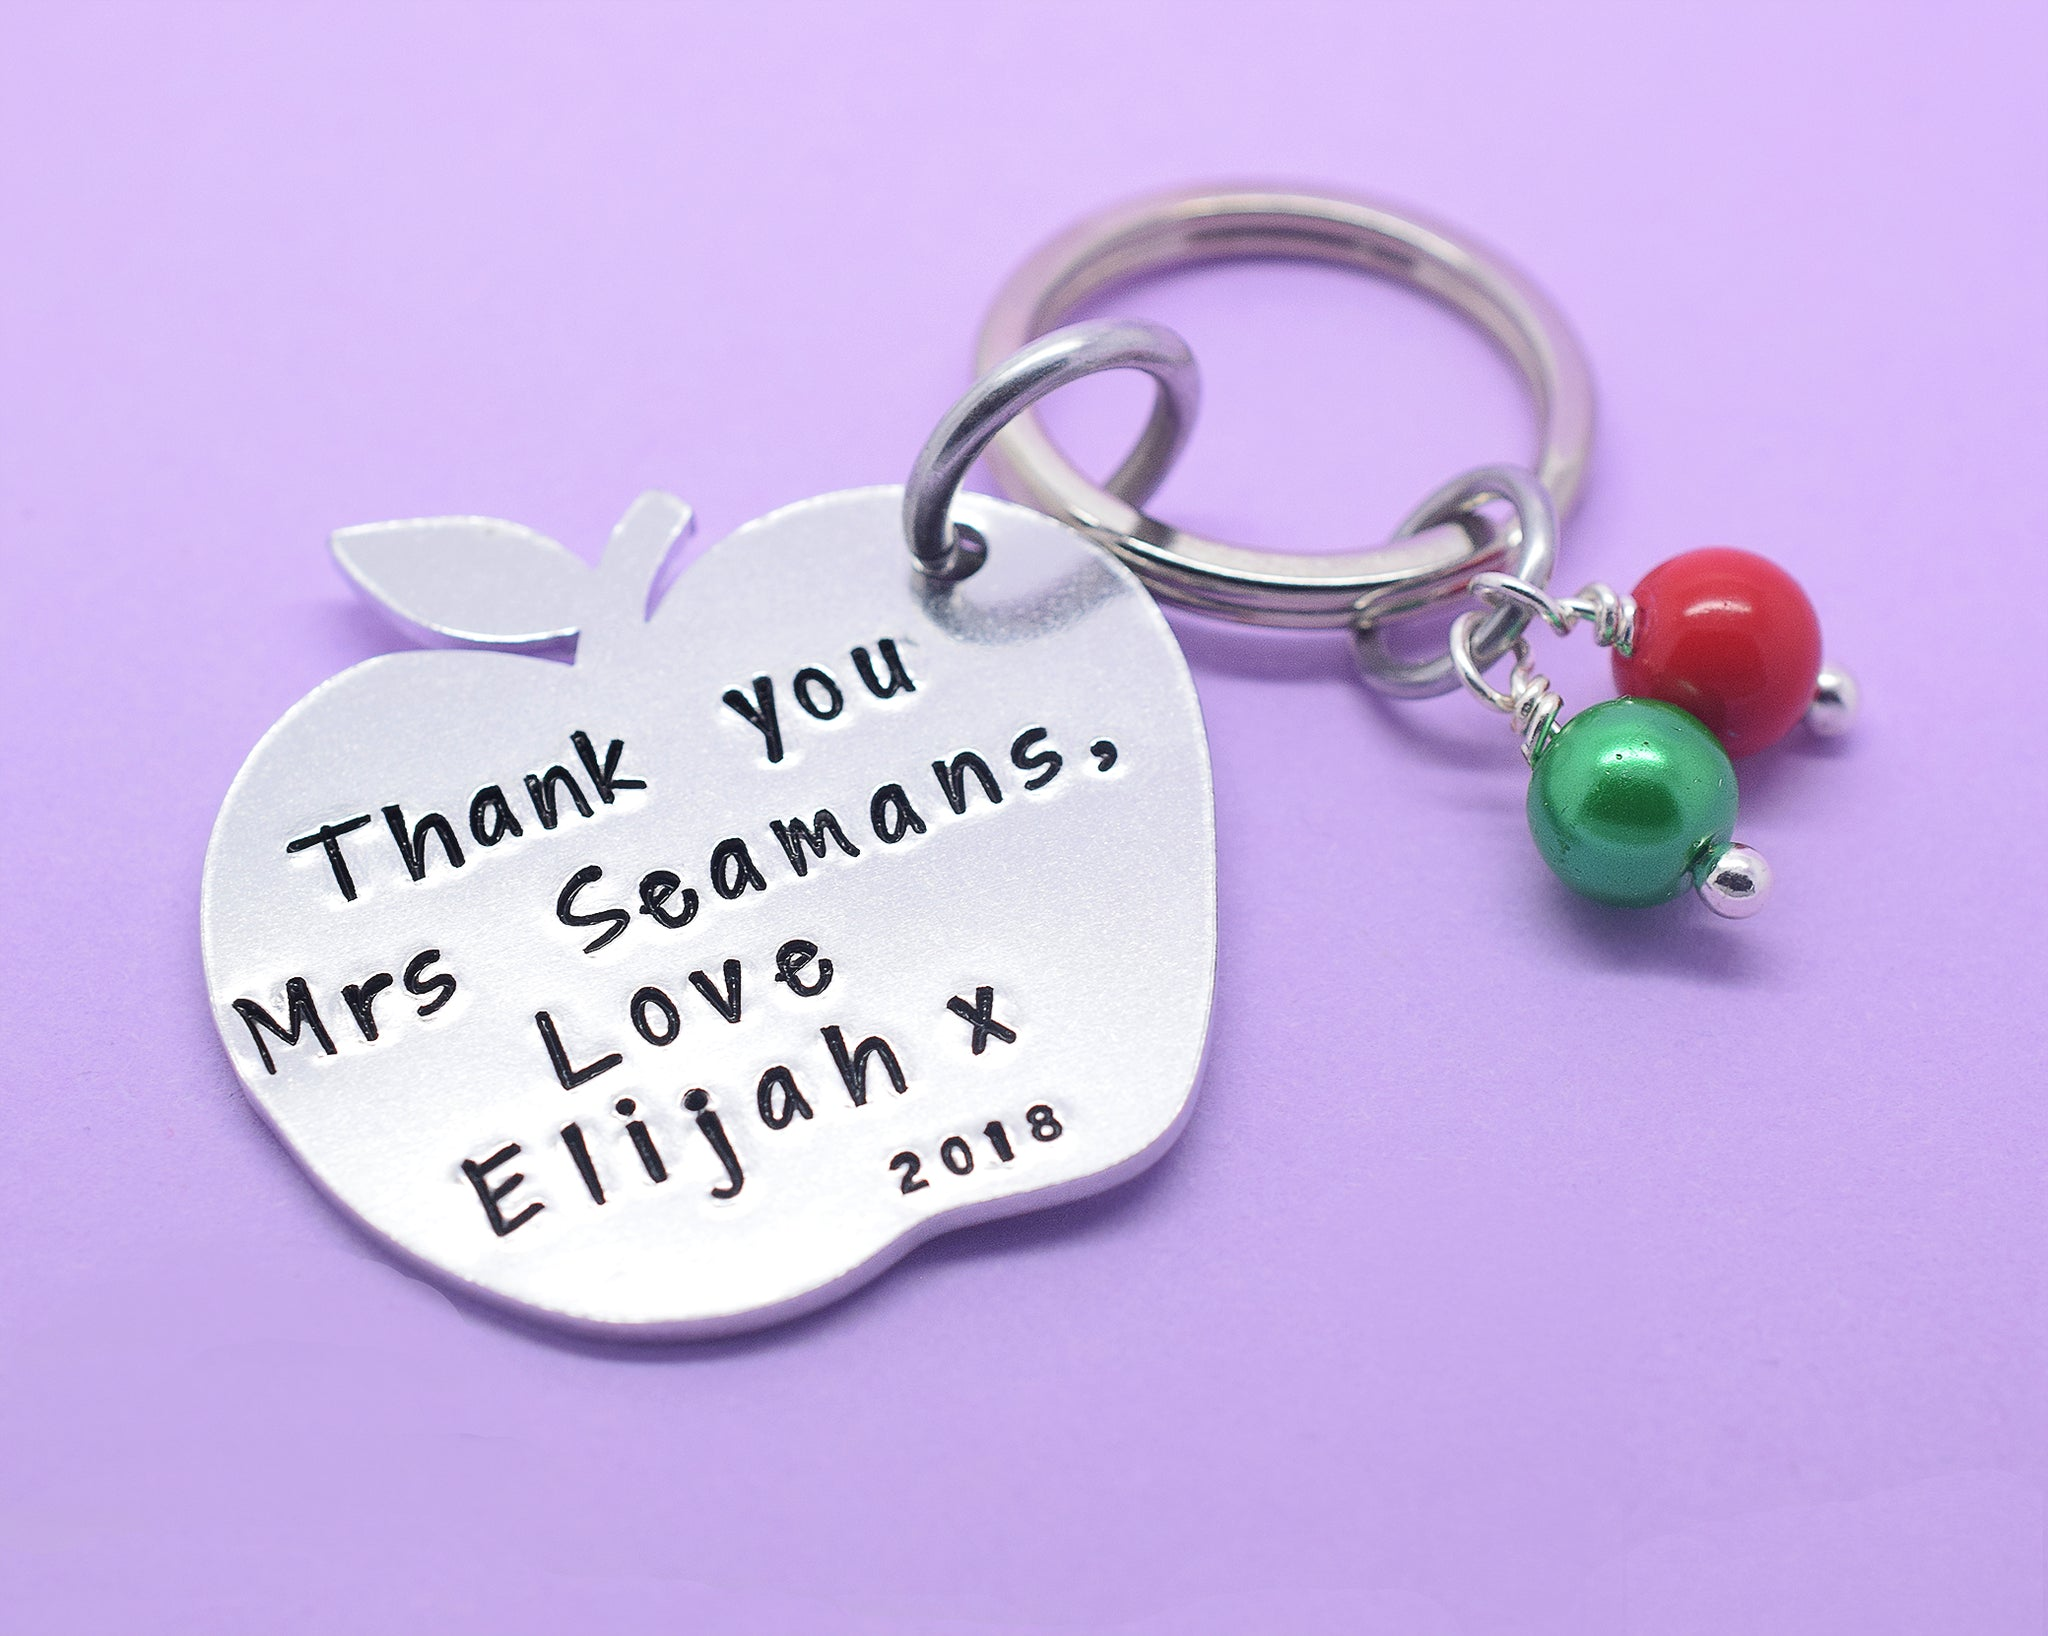 Teacher Gift, Personalised Teacher Gift, Teacher Keyring, Gift for Teachers, Thank You Gift, Teaching Assistant Keyworker, Hand Stamped, Personalised Teacher Gift, Thank You Teacher, Teacher Keyring Keychain, Hand Stamped, Teaching Assistant Key Worker Gift, End Of Term Gift